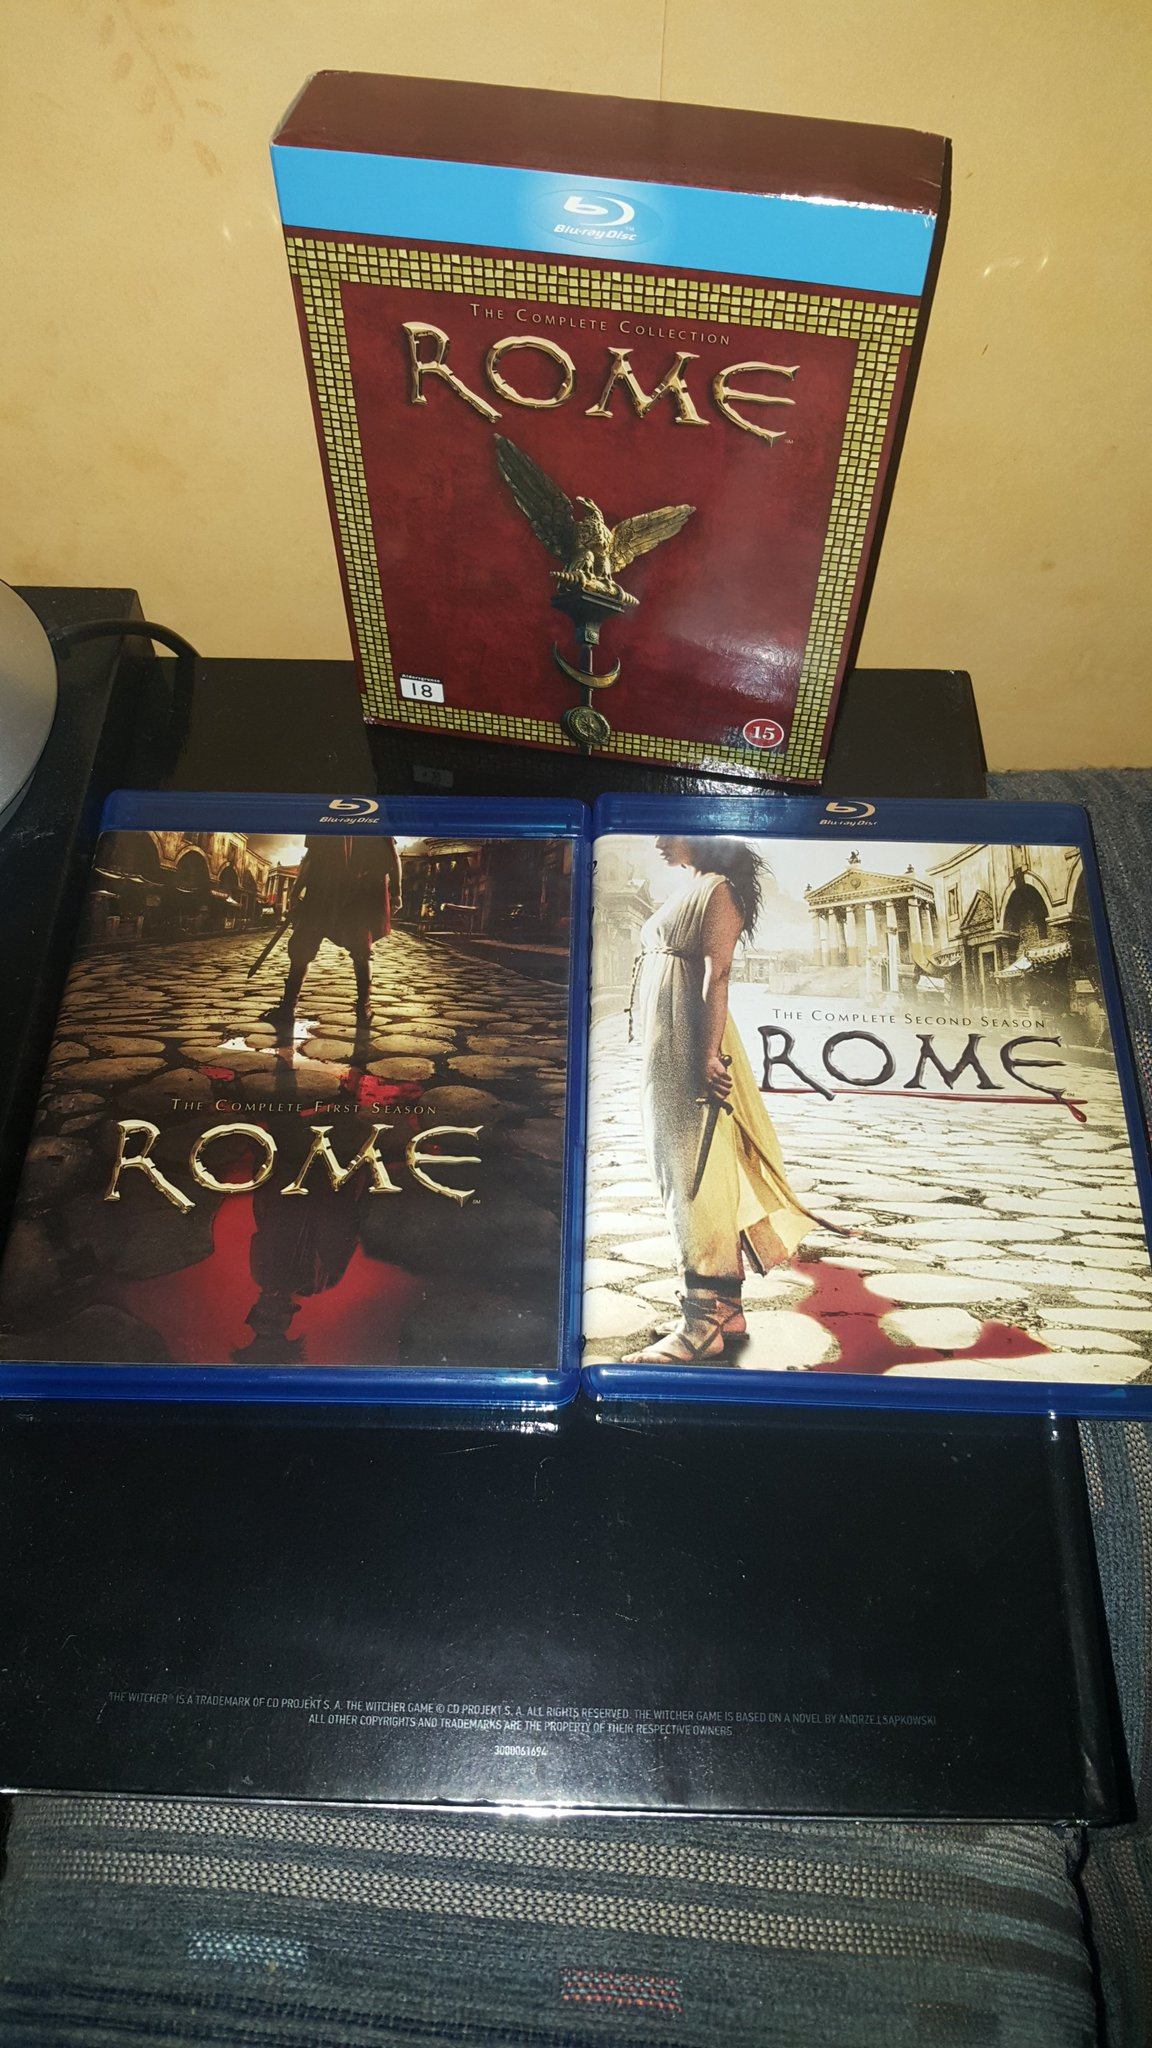 Rome Blu Ray Box, HBO, Sopranos, The Wire, Deadwood